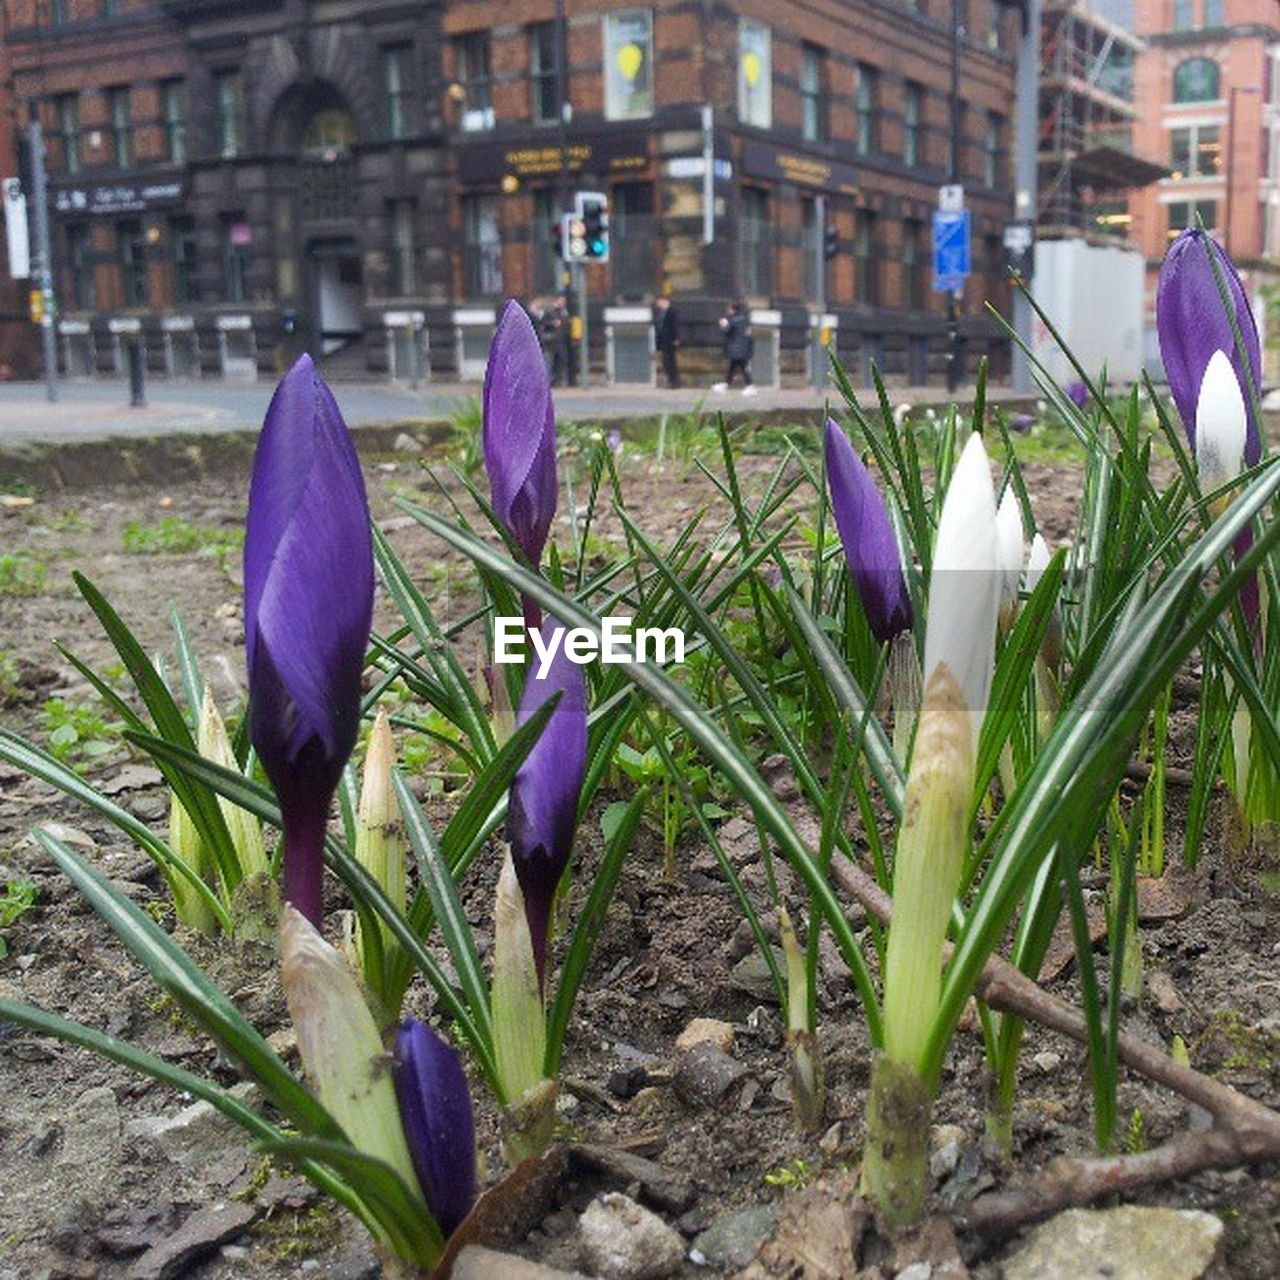 flower, freshness, petal, flower head, nature, growth, purple, fragility, beauty in nature, plant, outdoors, day, crocus, focus on foreground, blooming, springtime, built structure, building exterior, snowdrop, close-up, architecture, no people